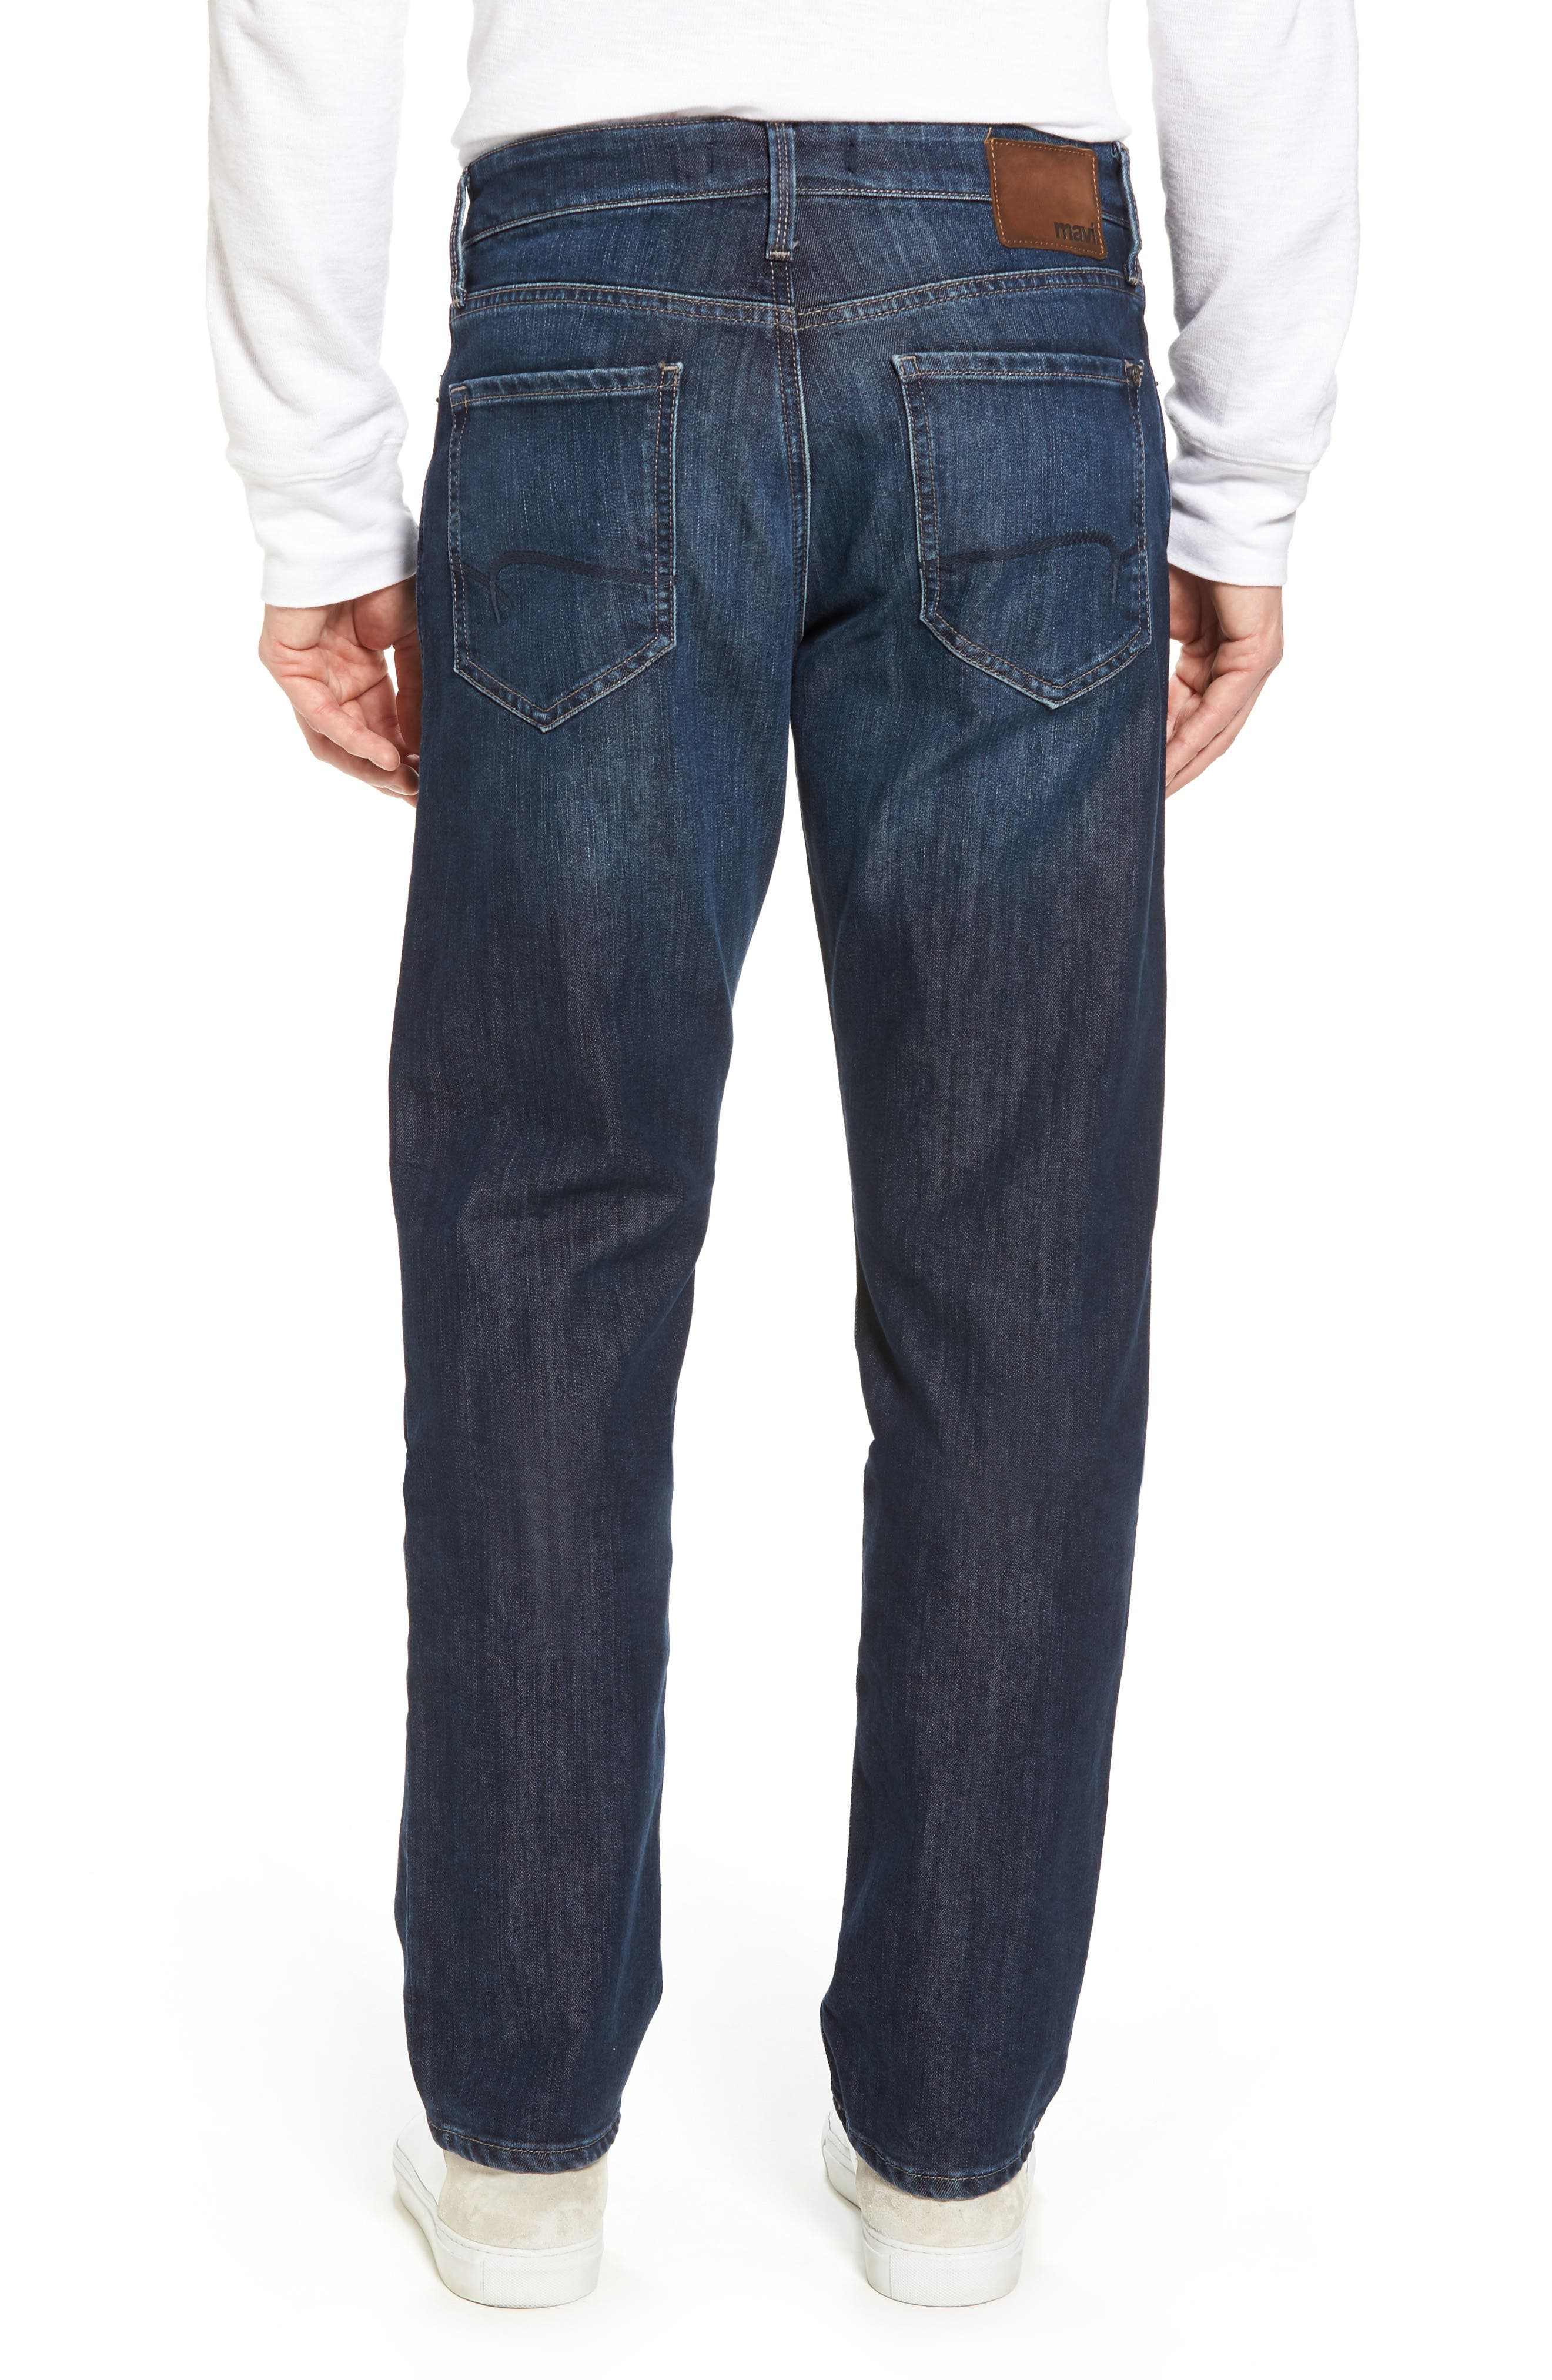 Myles Straight Leg Jeans,                             Alternate thumbnail 2, color,                             Deep Brushed Stanford